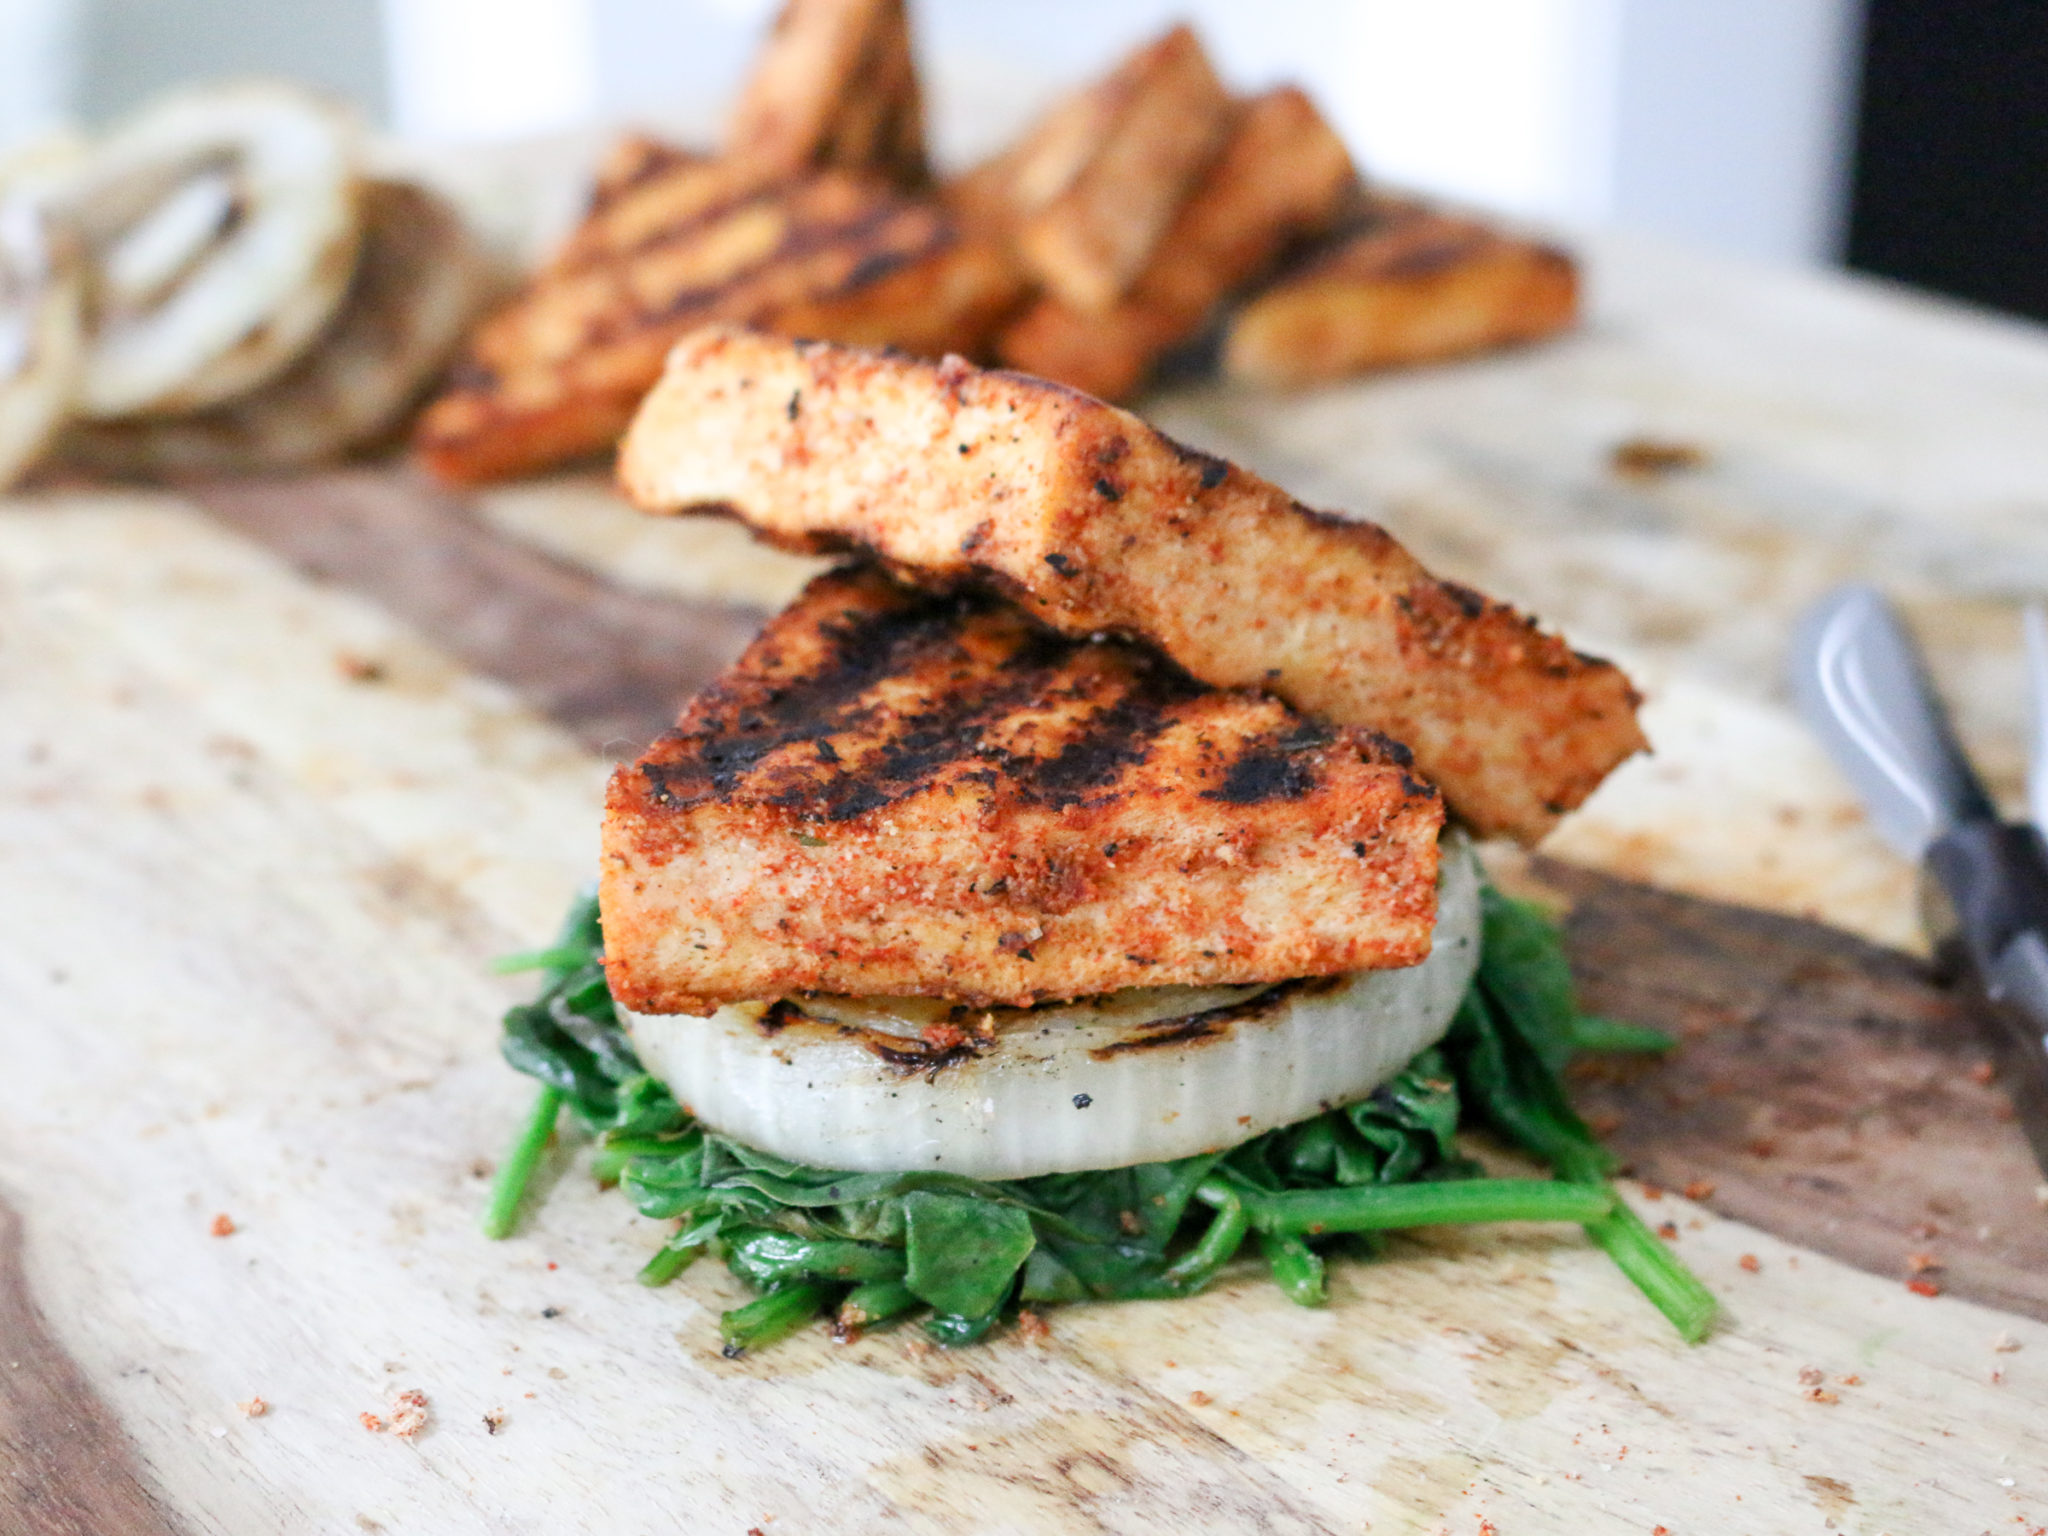 Grilled tofu steak on a wood board with onion and spinach